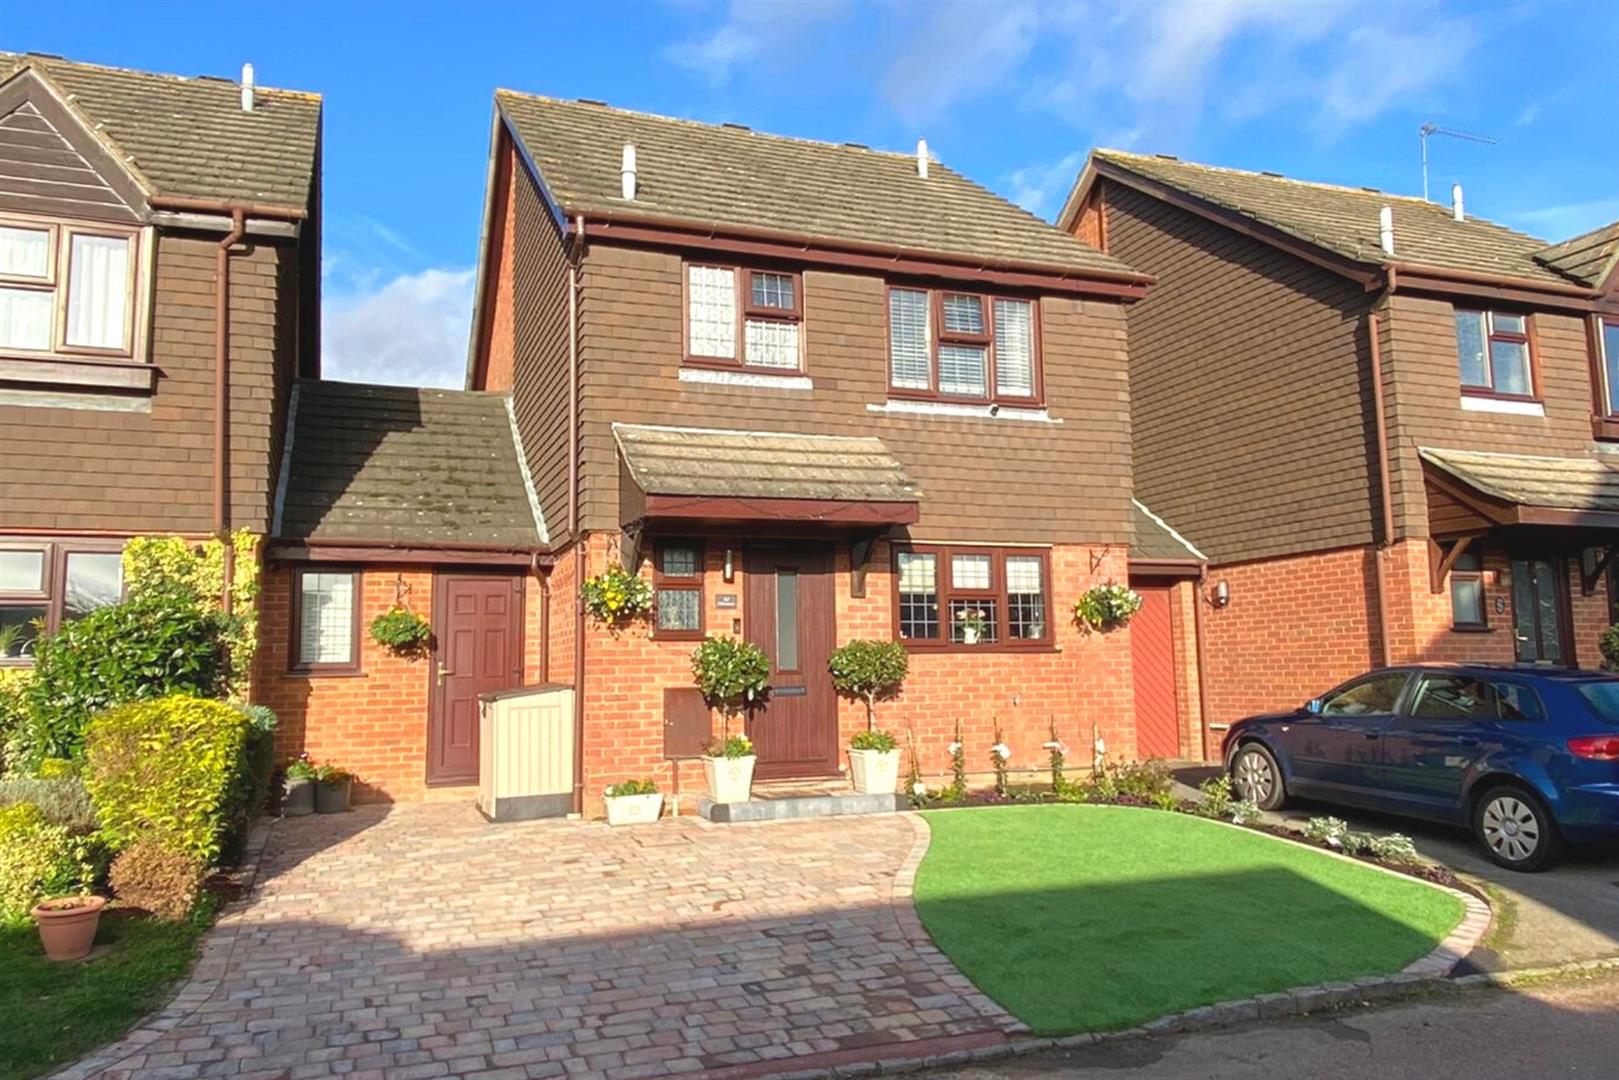 4 bed link detached house to rent in Lower Earley, RG6